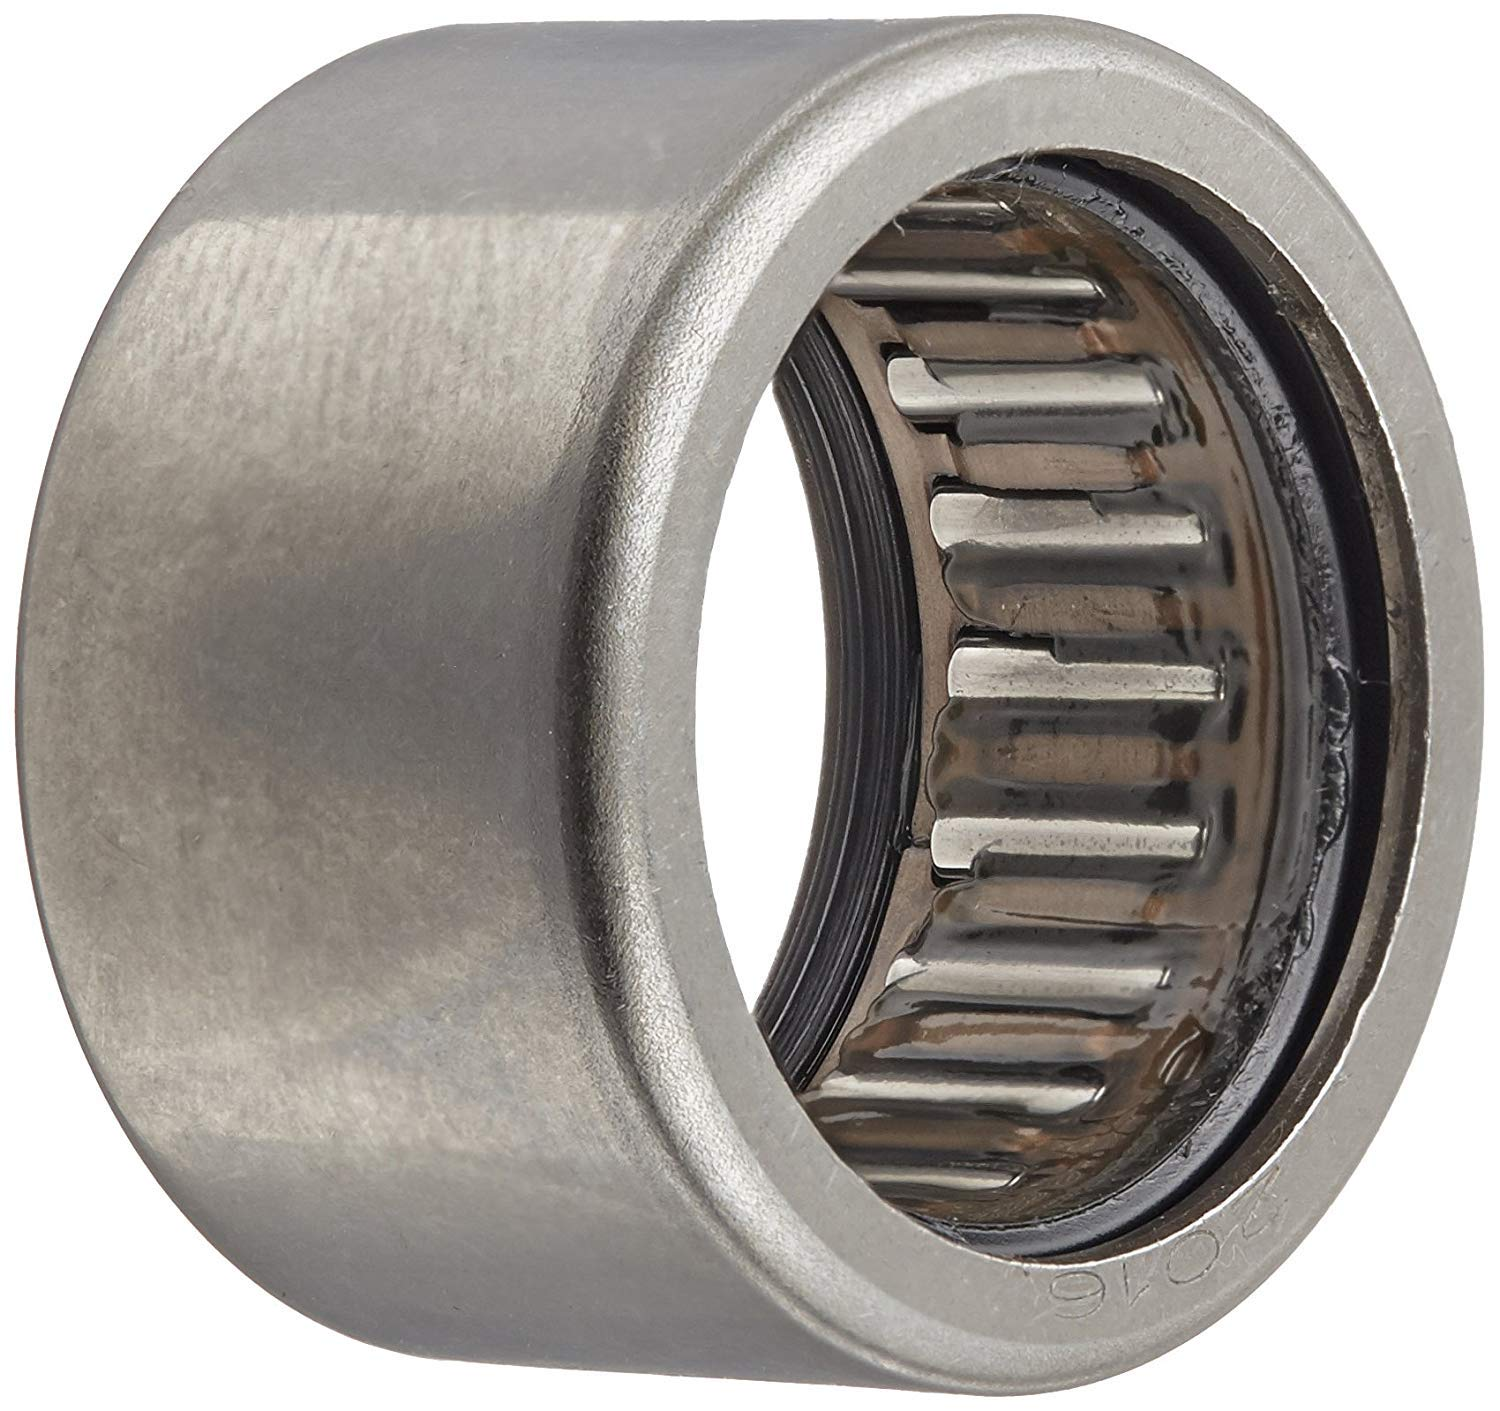 Koyo HK5024.2RS Needle Roller Bearing, Caged Drawn Cup, Outer Ring and Roller, Steel Cage, Open End, Double Sealed, Metric, 50mm ID, 58mm OD, 24mm Width